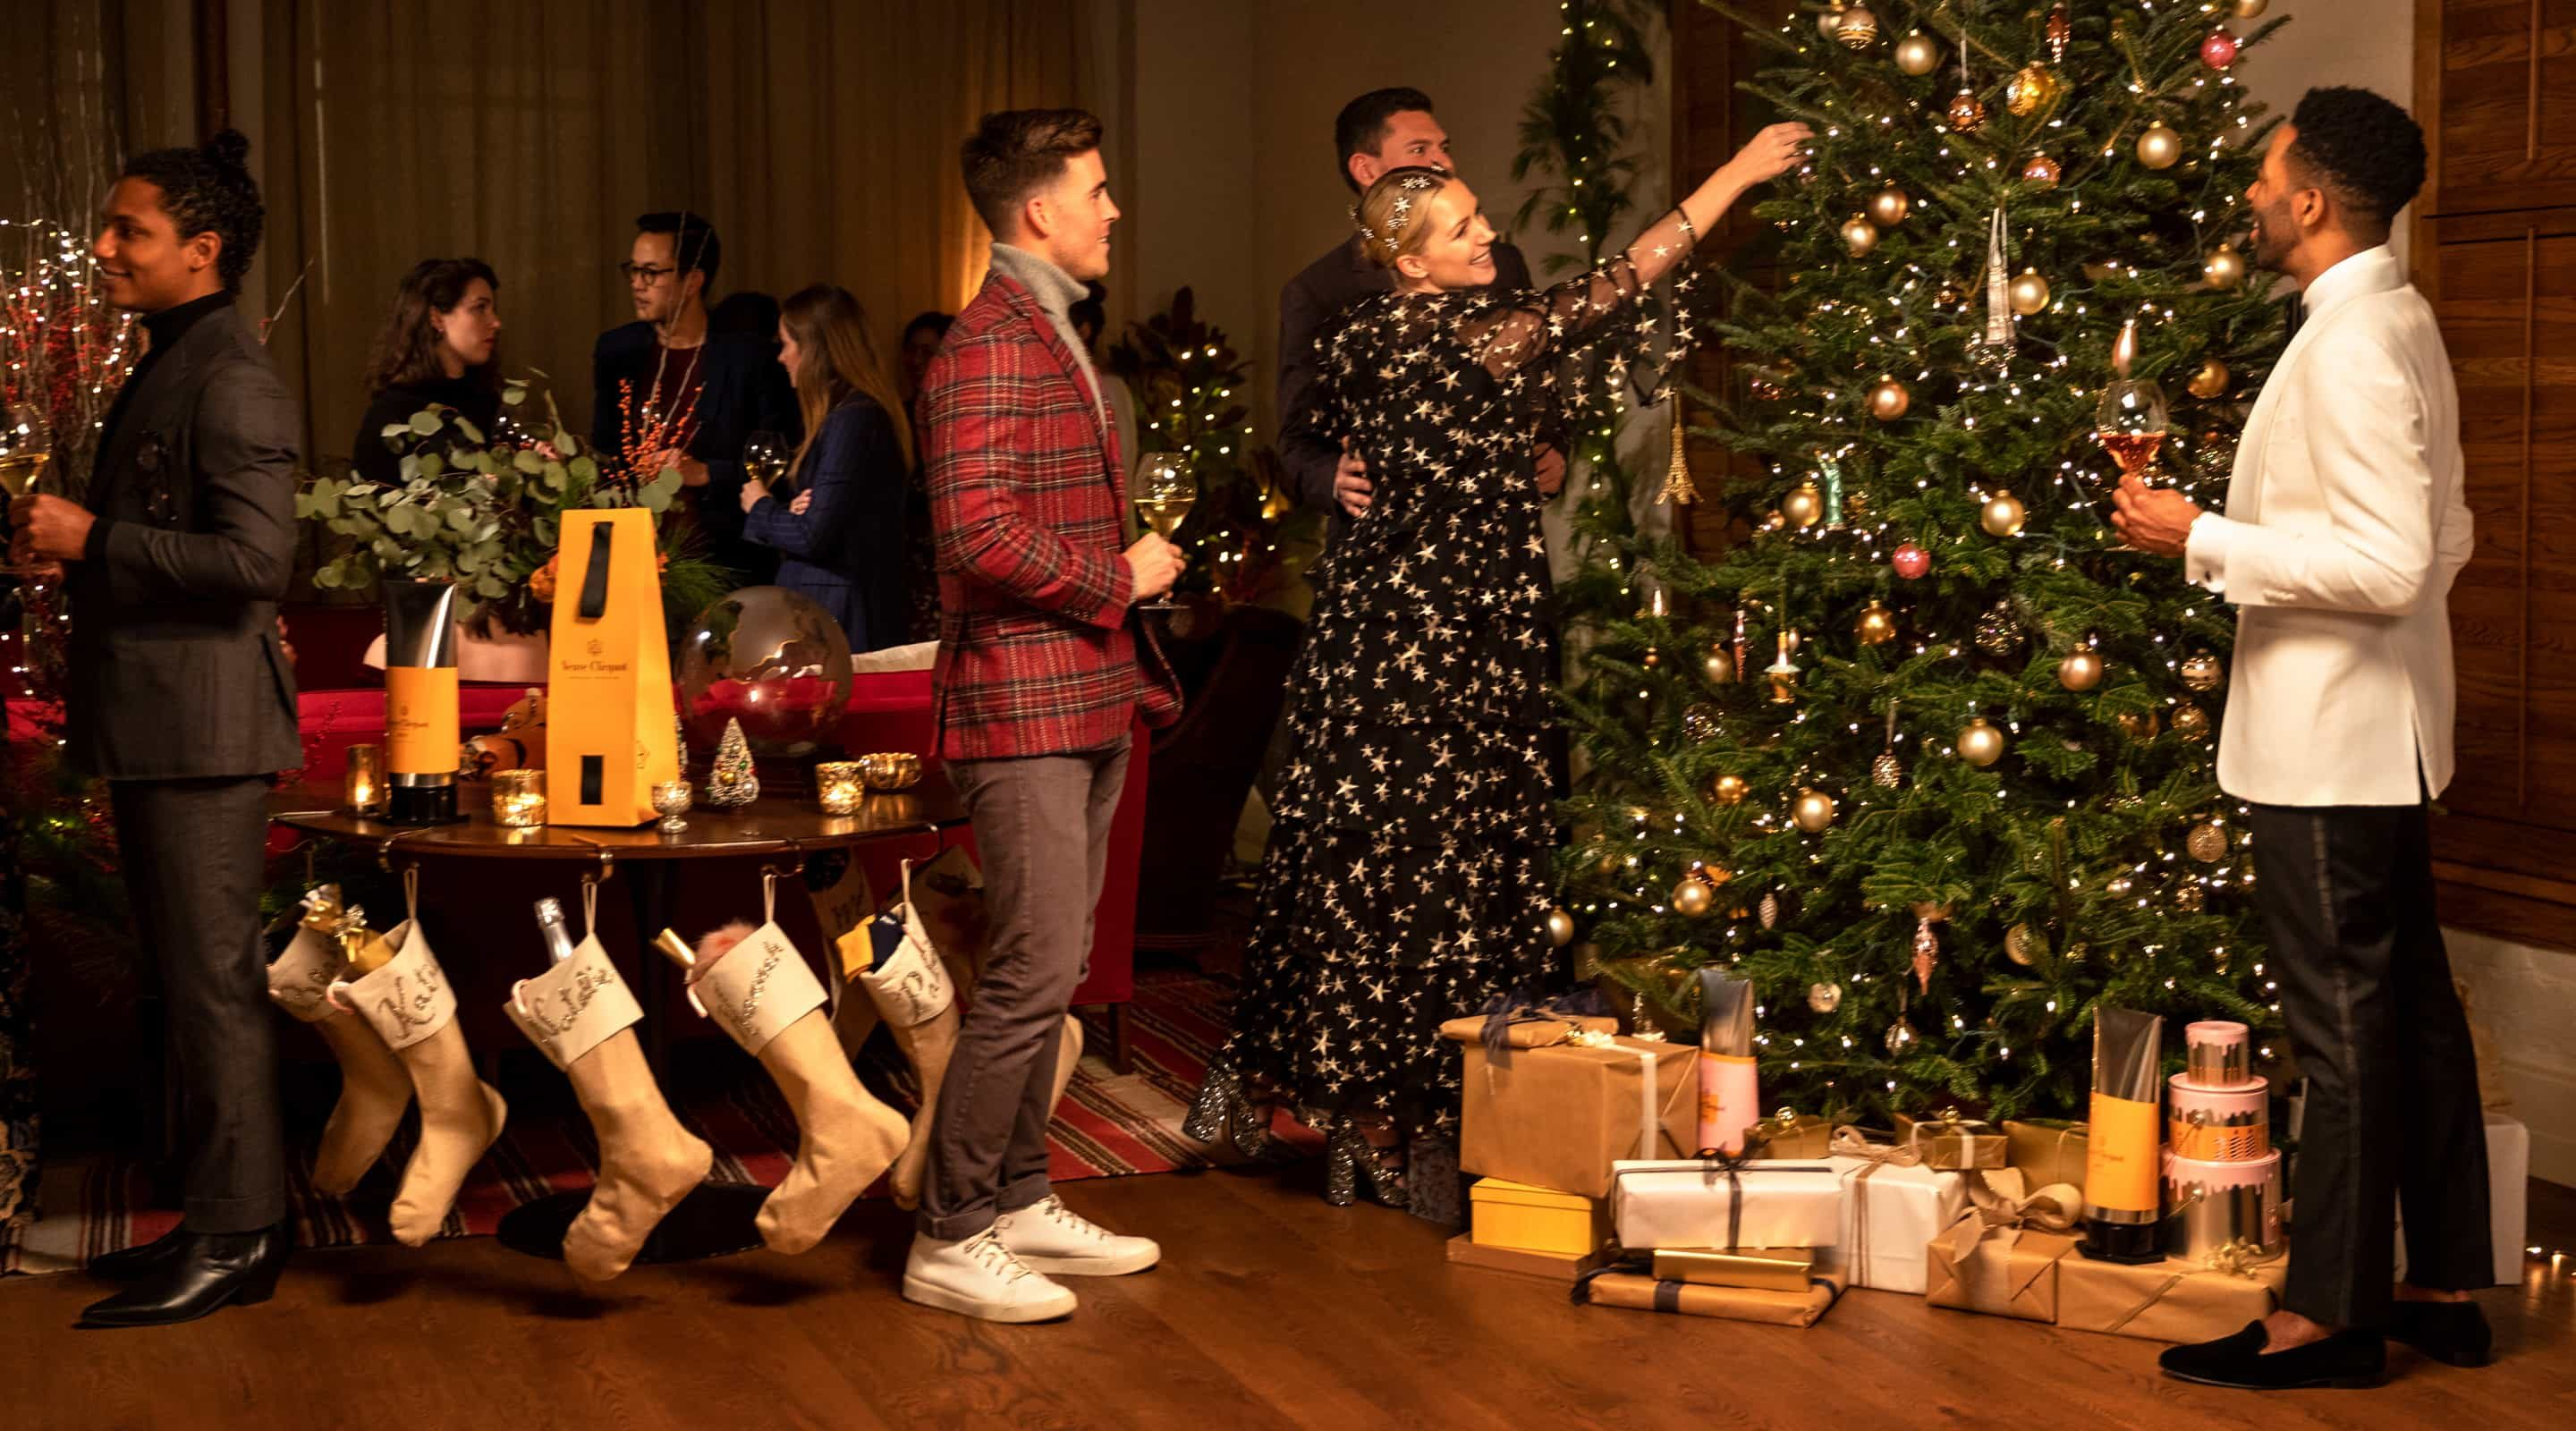 Veuve Clicquot Social Media Campaign for Holiday